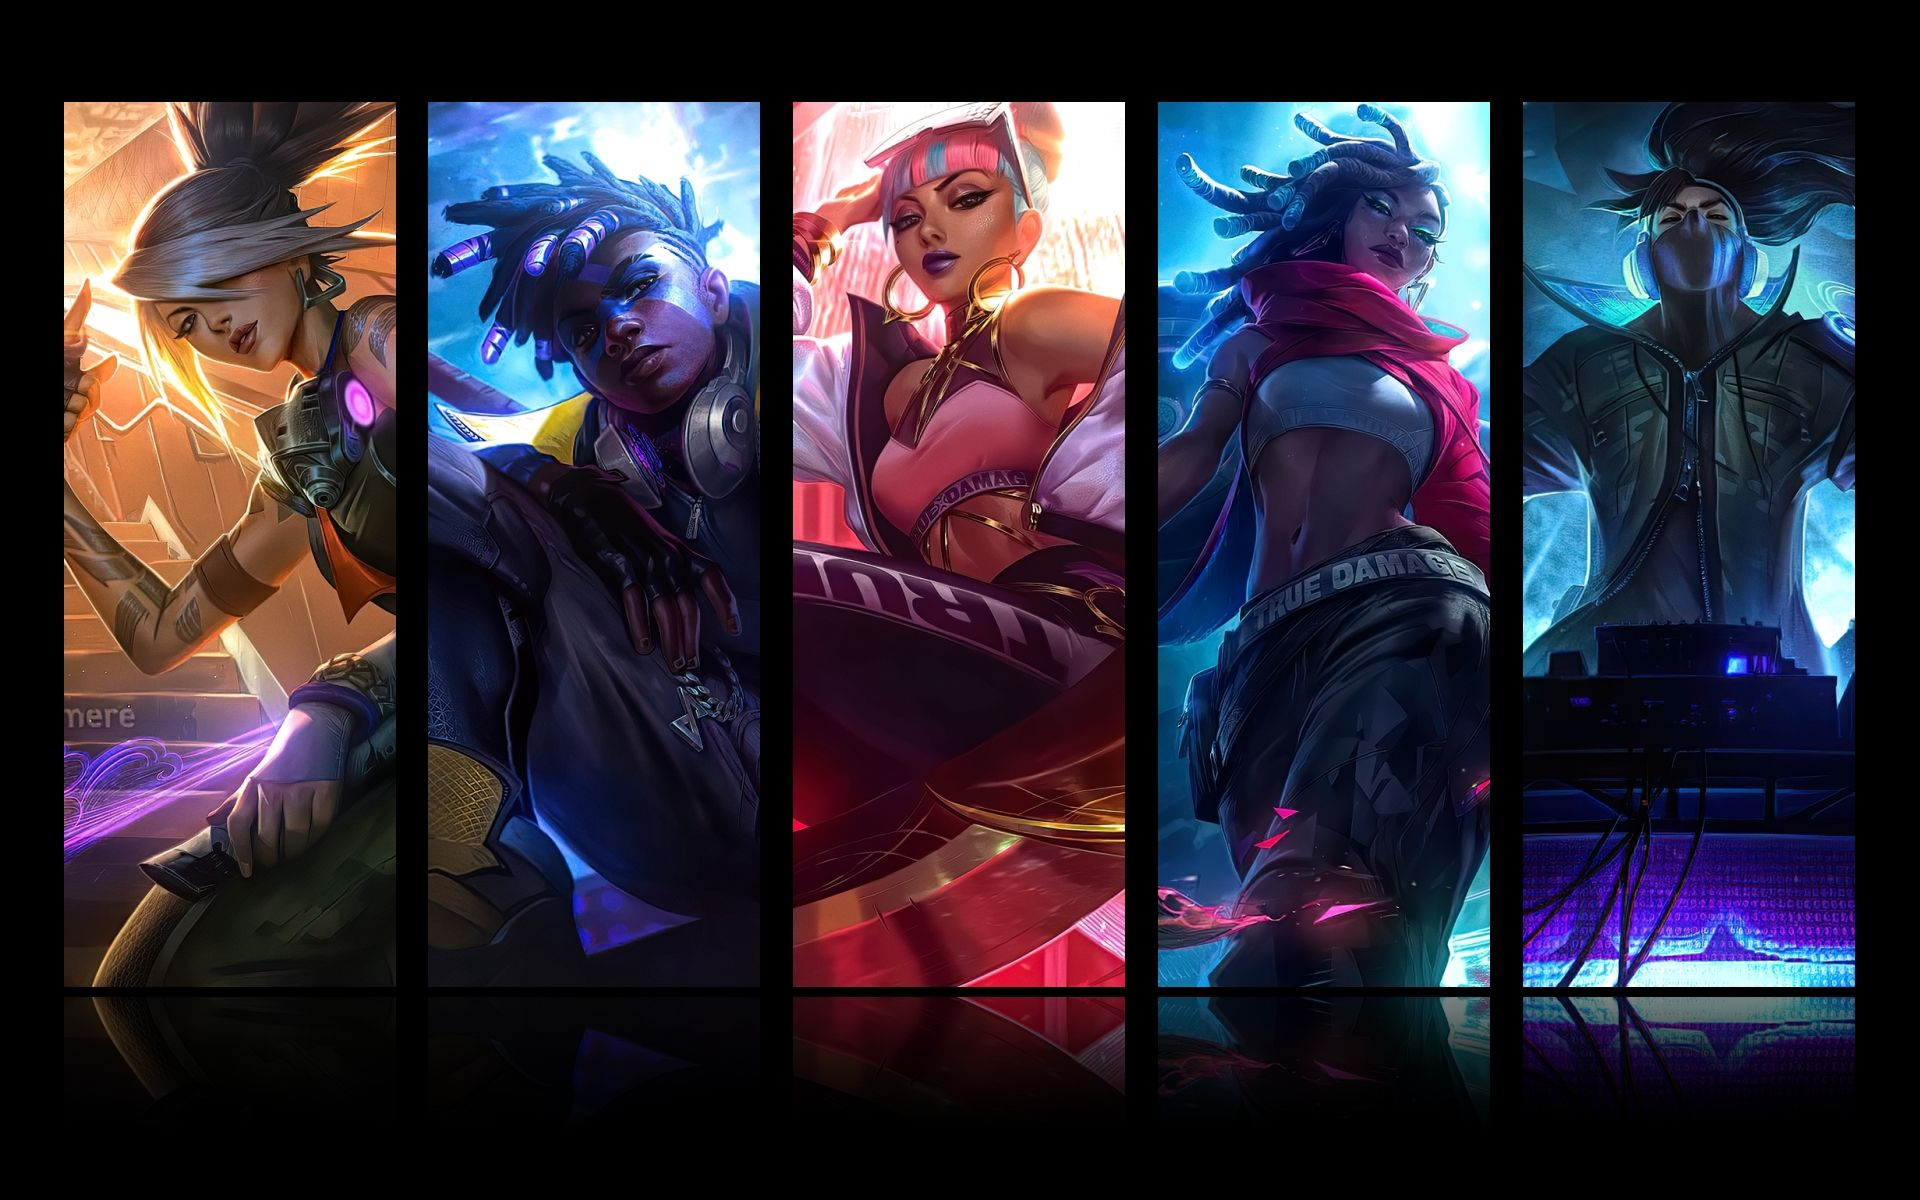 True Damage Skins Revealed Ahead Of Lol Worlds 2019 Final L2pbomb League Of Legends Characters League Of Legends Lol League Of Legends